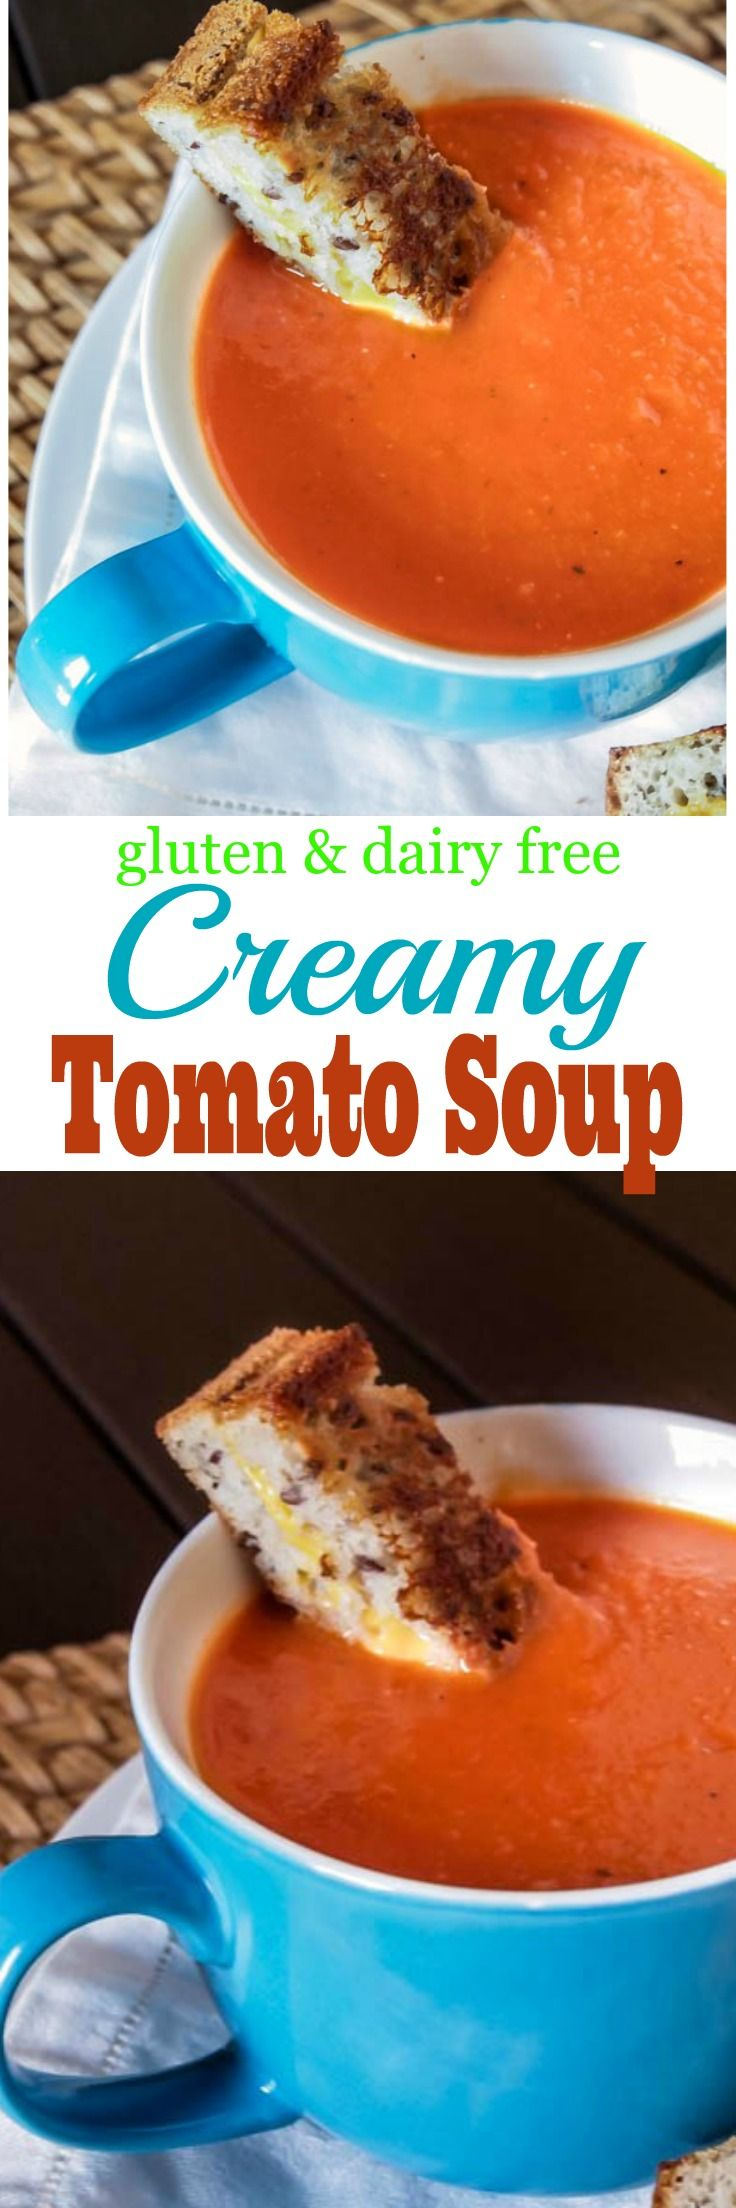 Warm up on those cool nights with this easy Creamy Gluten Free and Dairy Free Tomato Soup